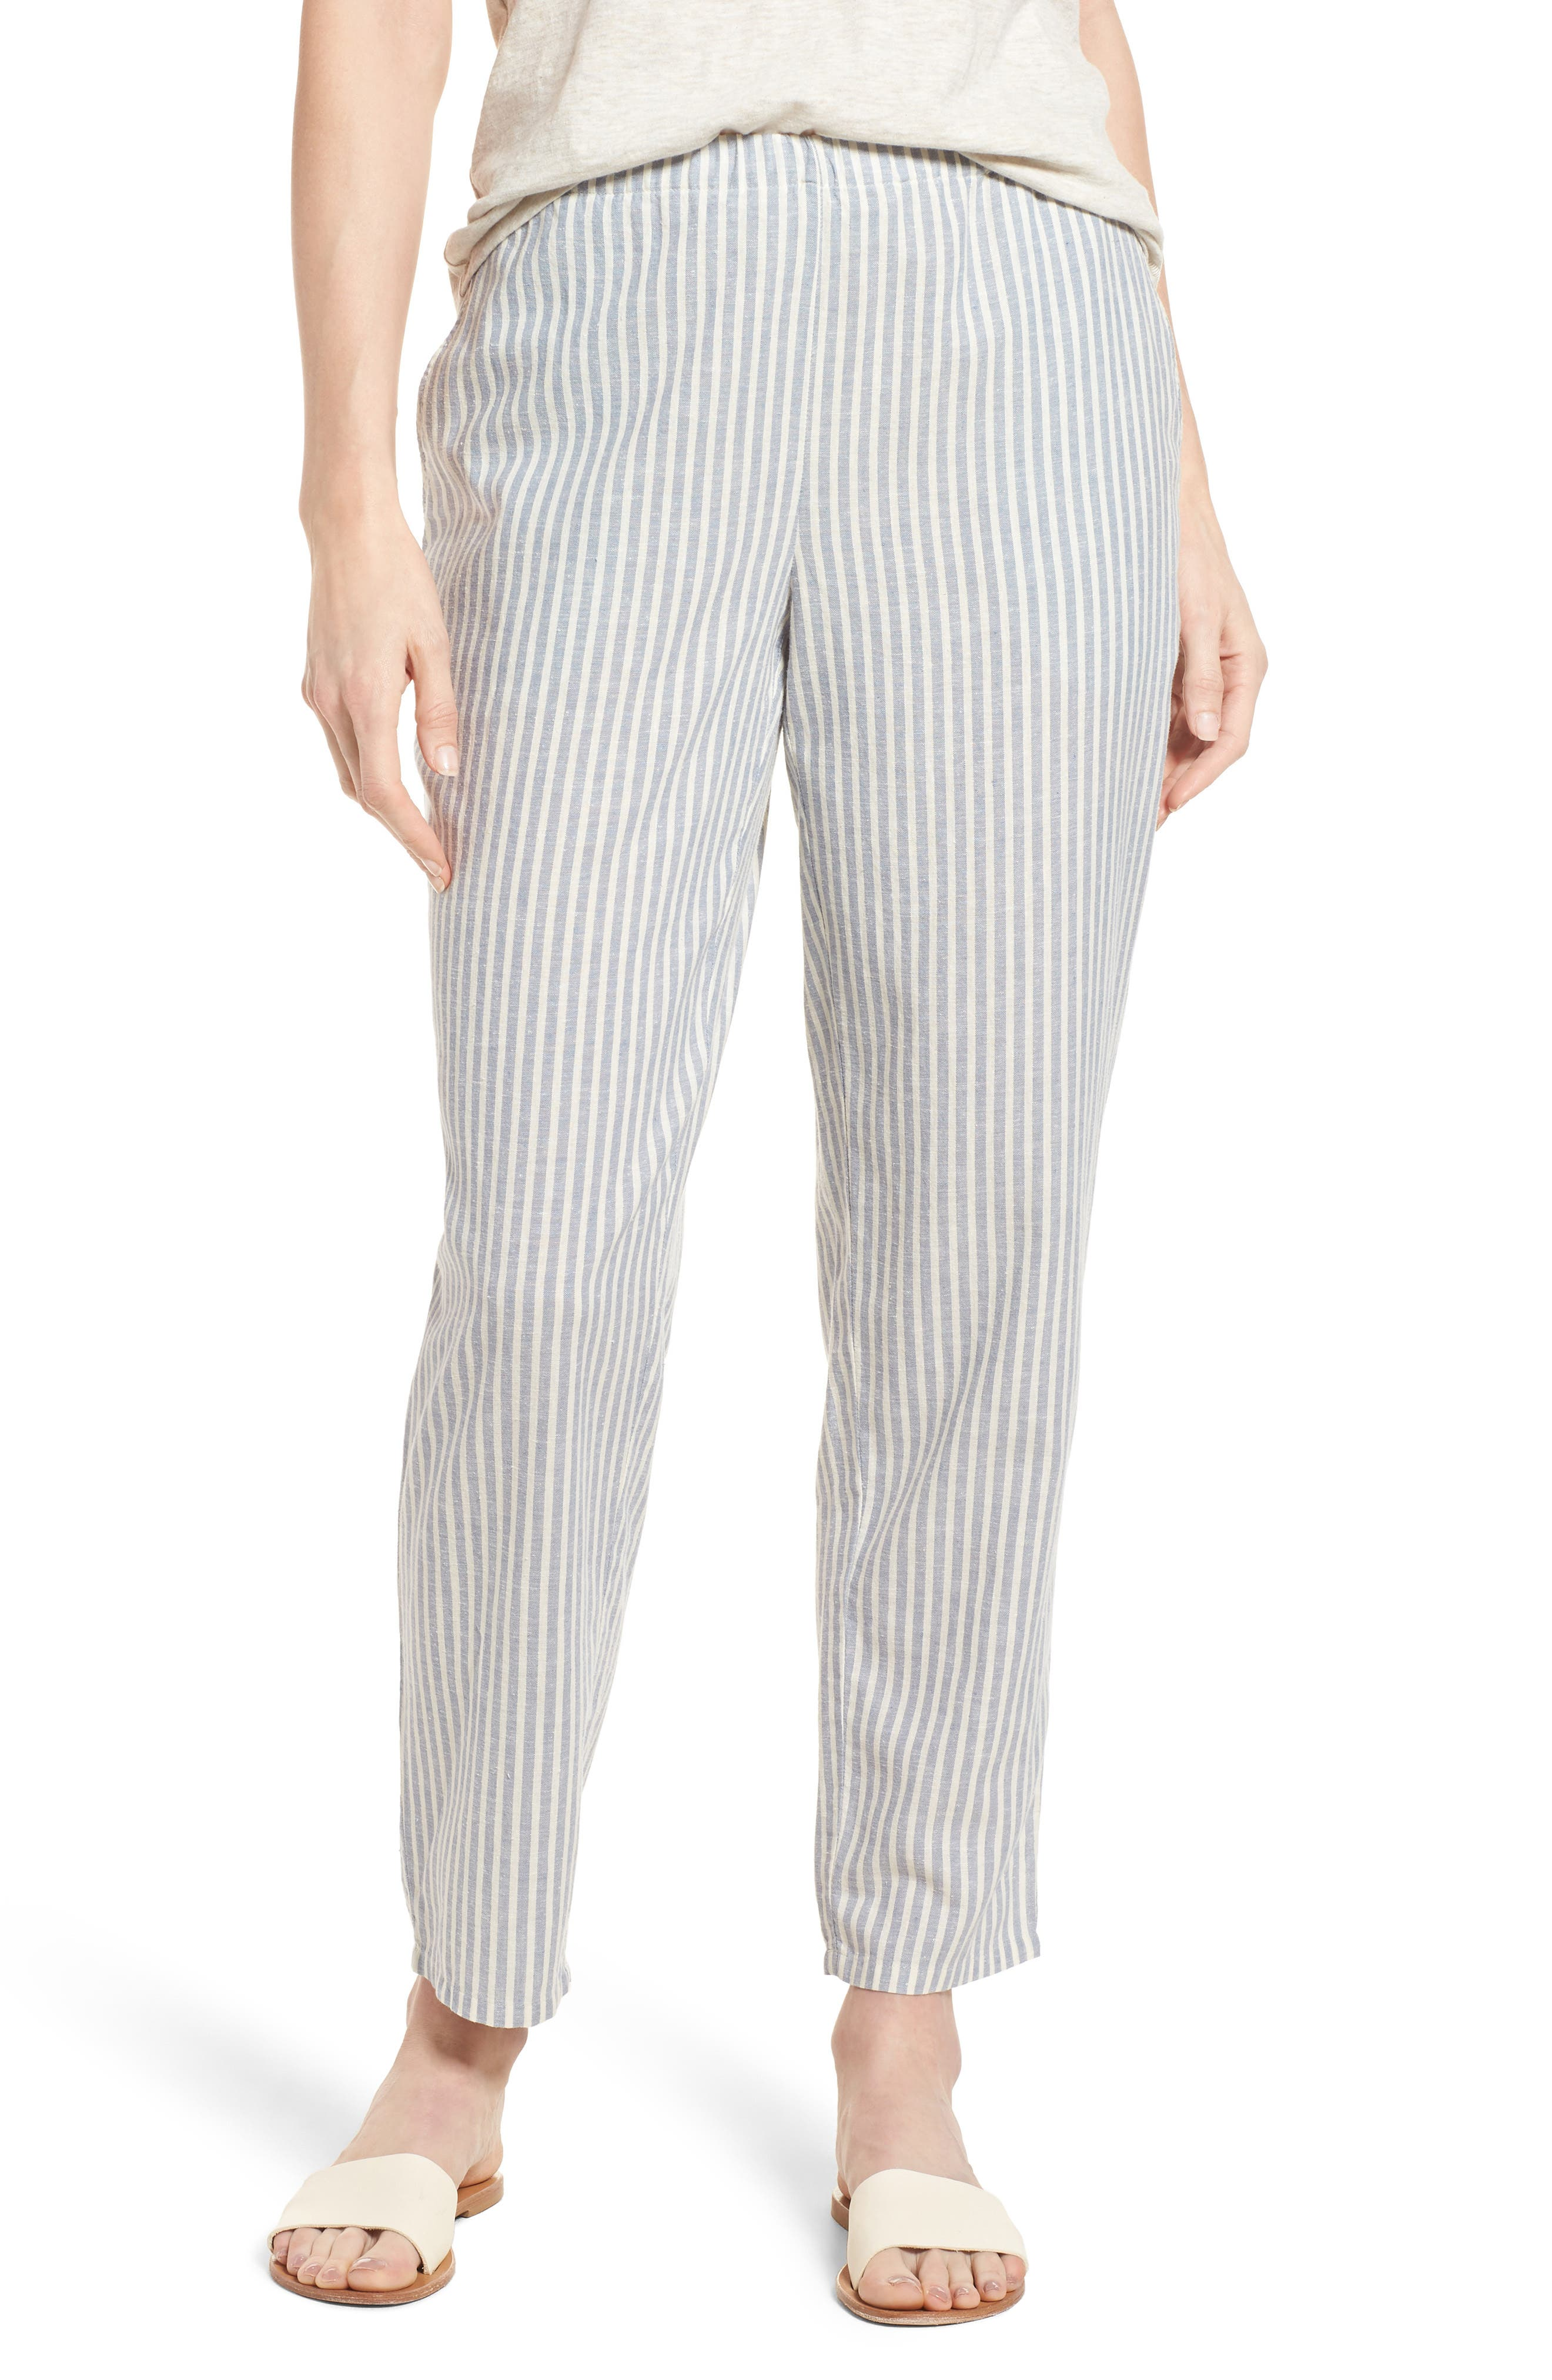 Stripe Tapered Hemp Blend Ankle Pants,                         Main,                         color, Chambray